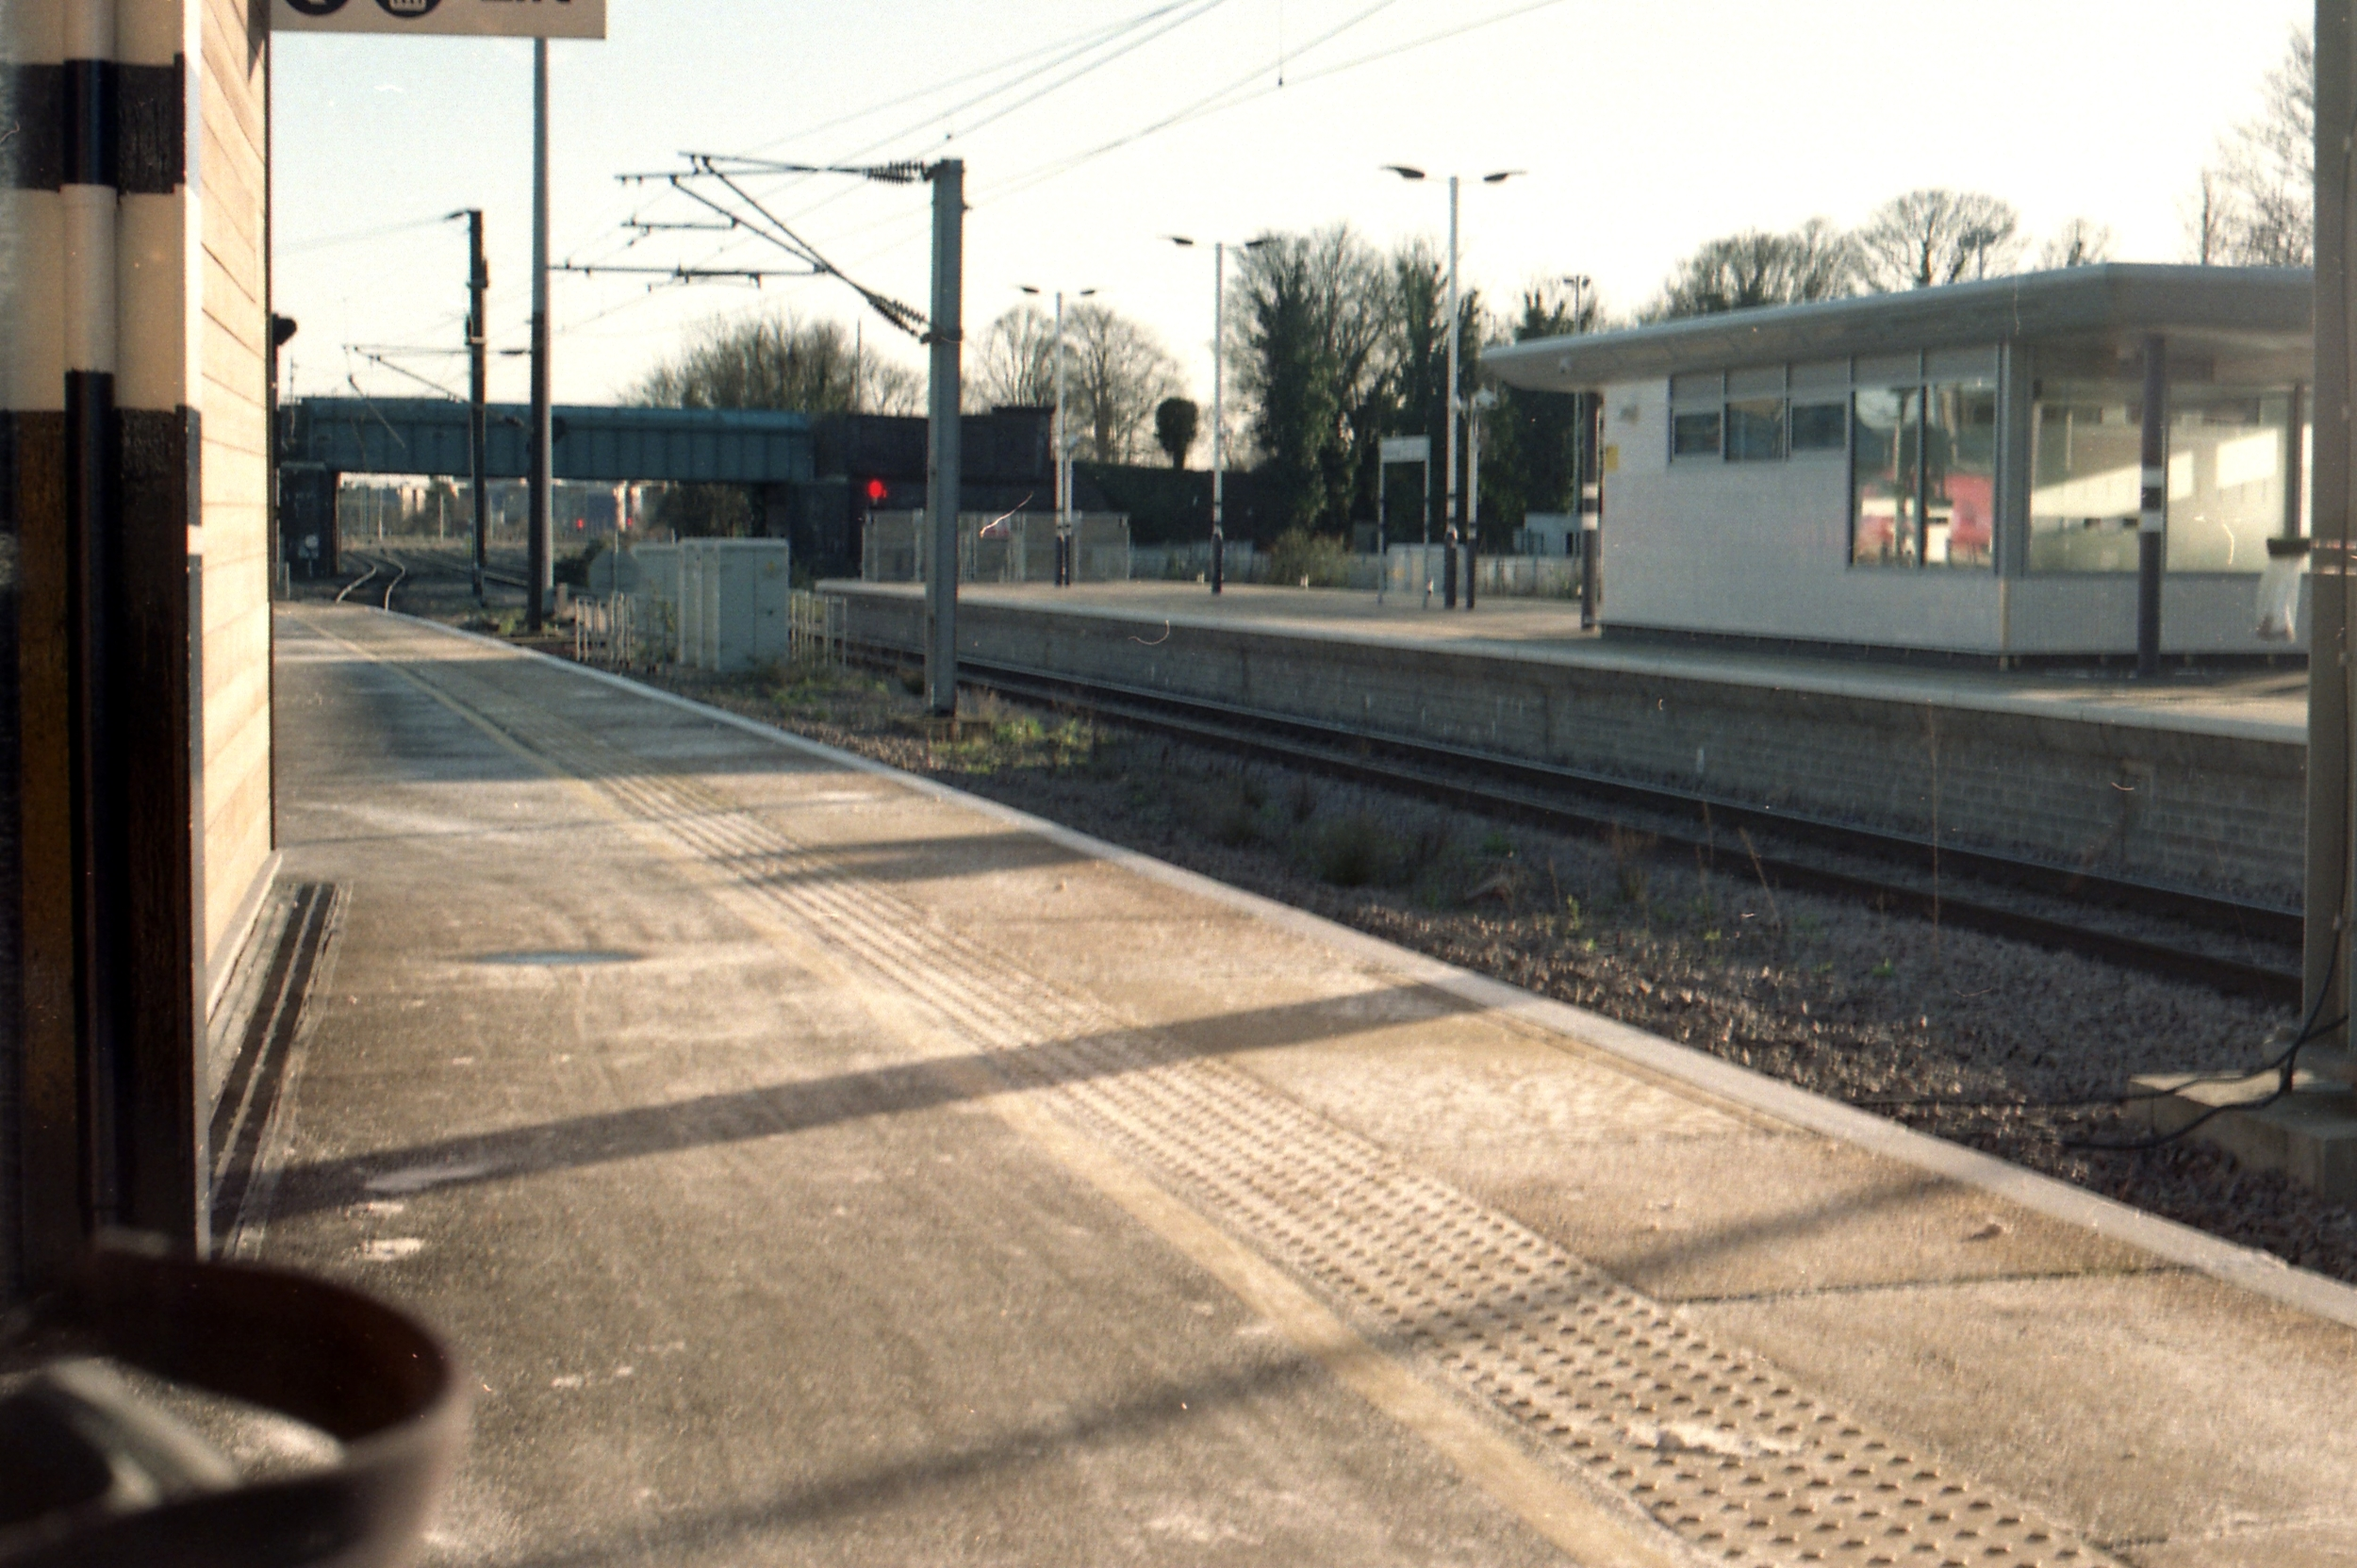 15/366 - Waiting for my next train in Peterborough in the sunshine. What you can't see is the very large tea I also had as it was freezing!